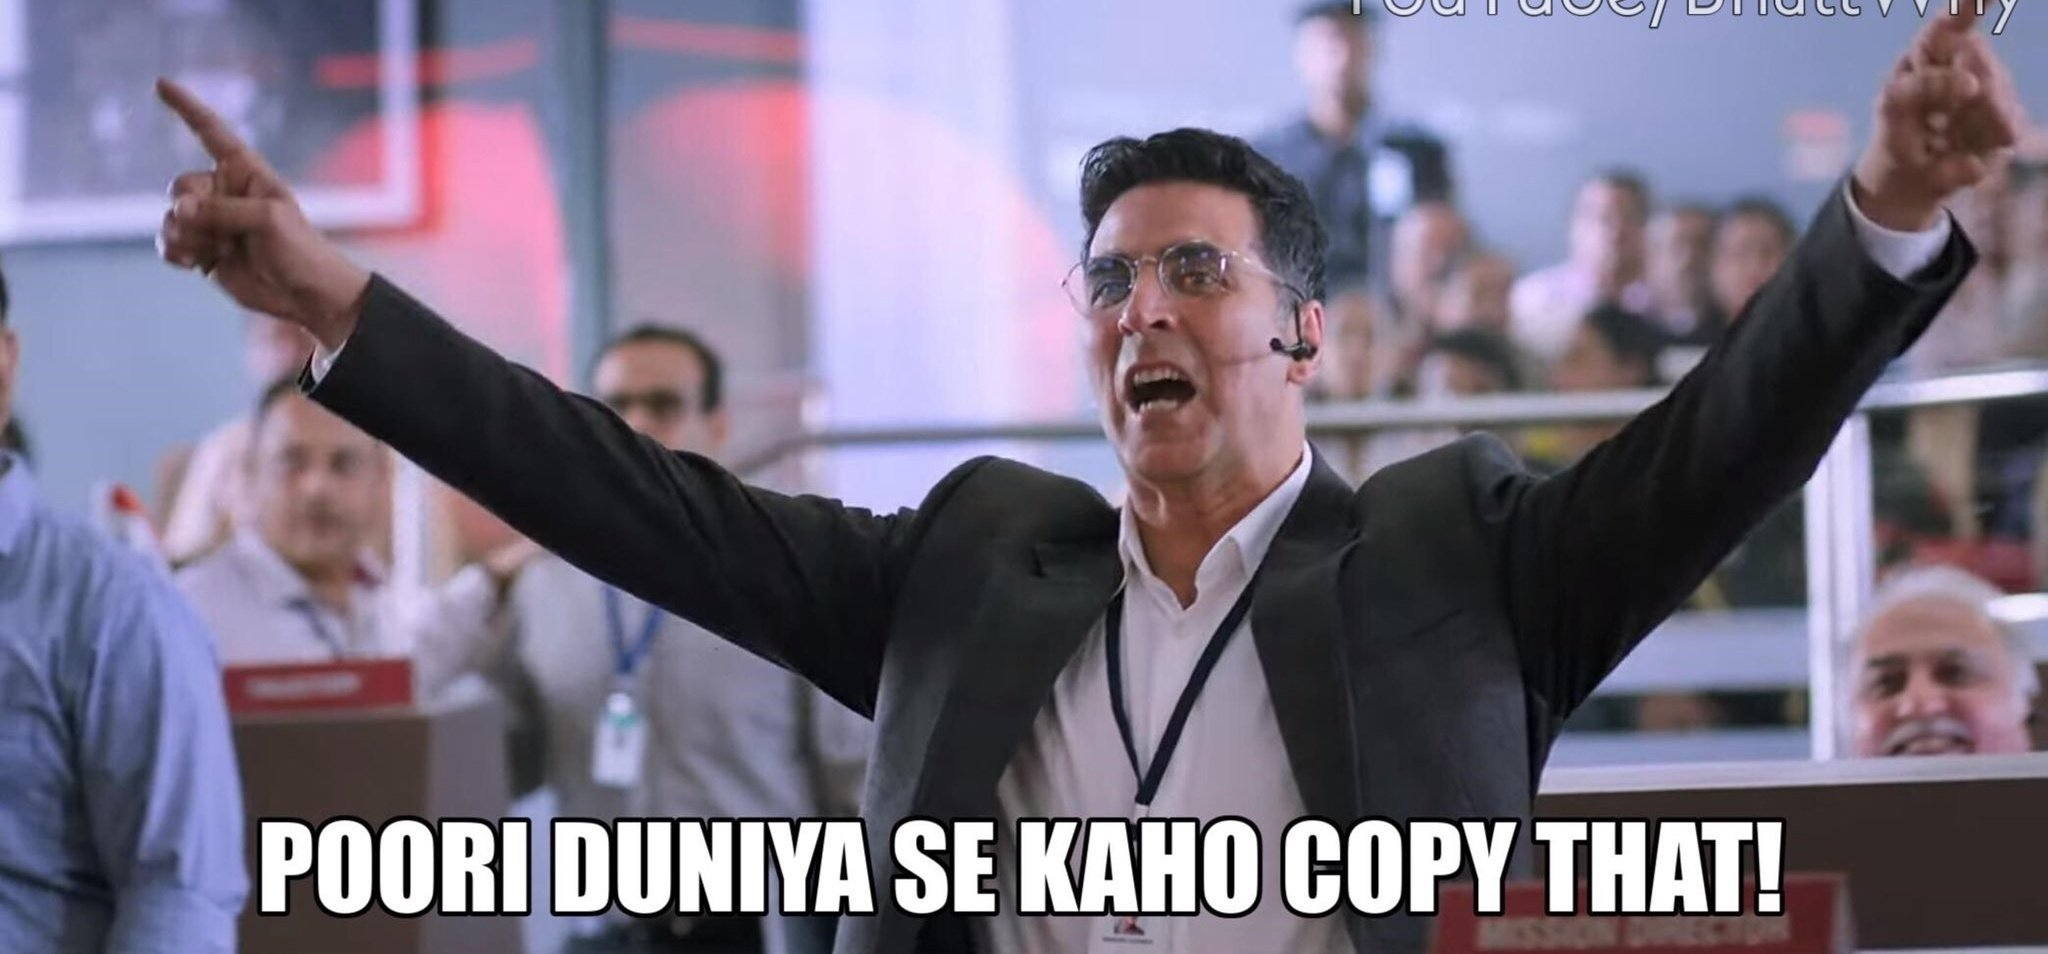 Akshay Kumar in Mission Mangal Trailer Poori duniya se kaho copy that!